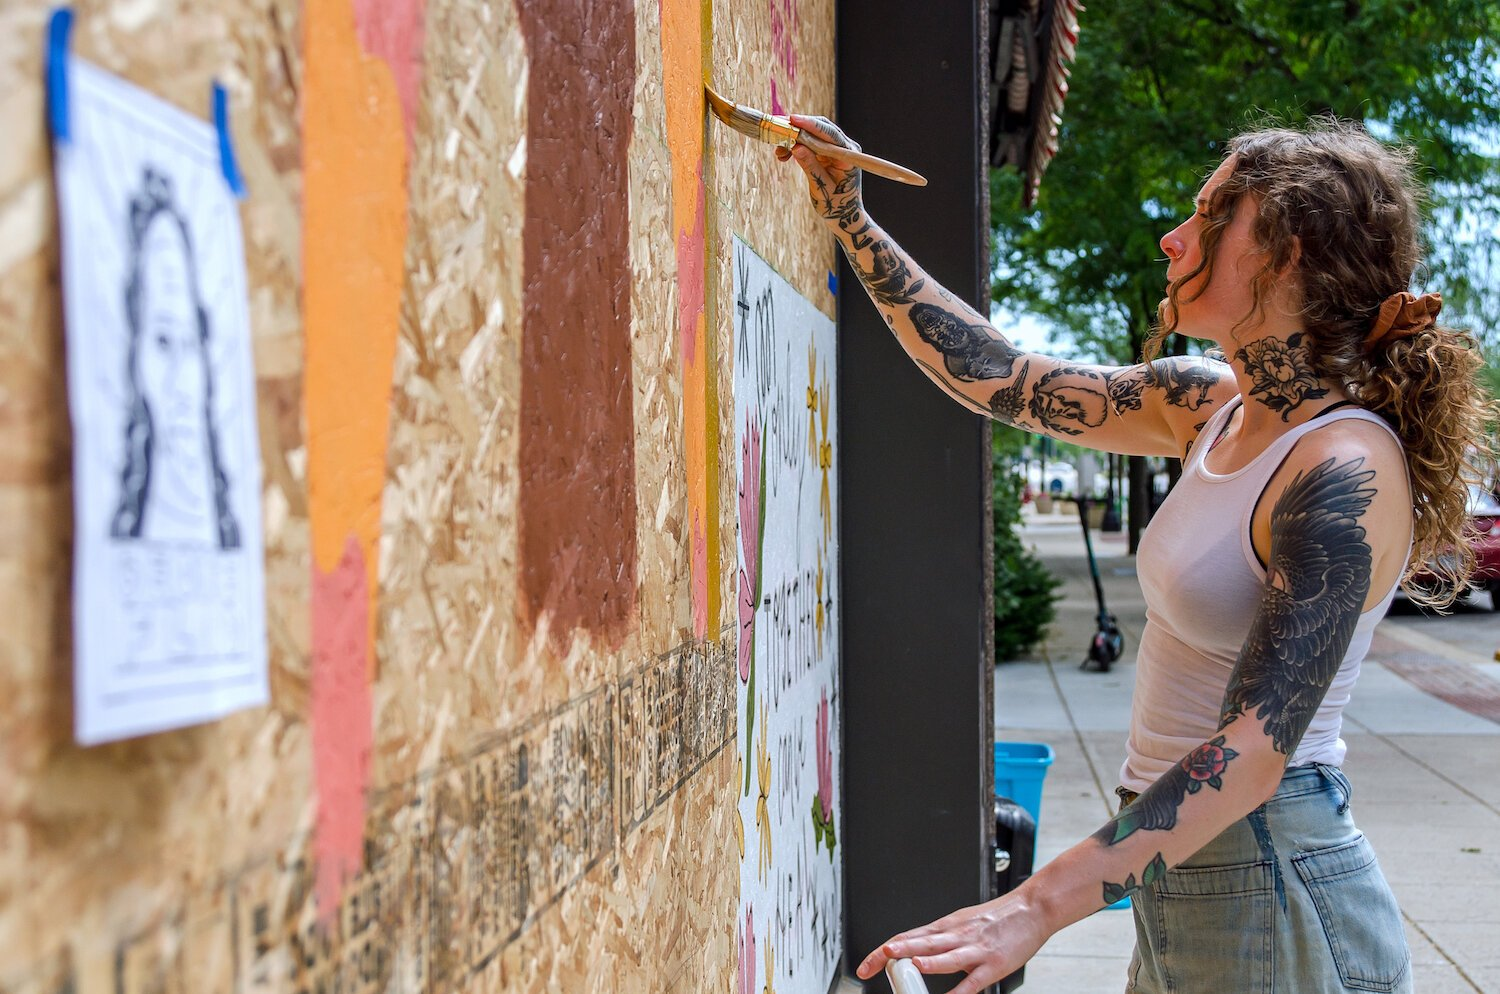 Adeline Griswold paints a mural in downtown Fort Wayne.